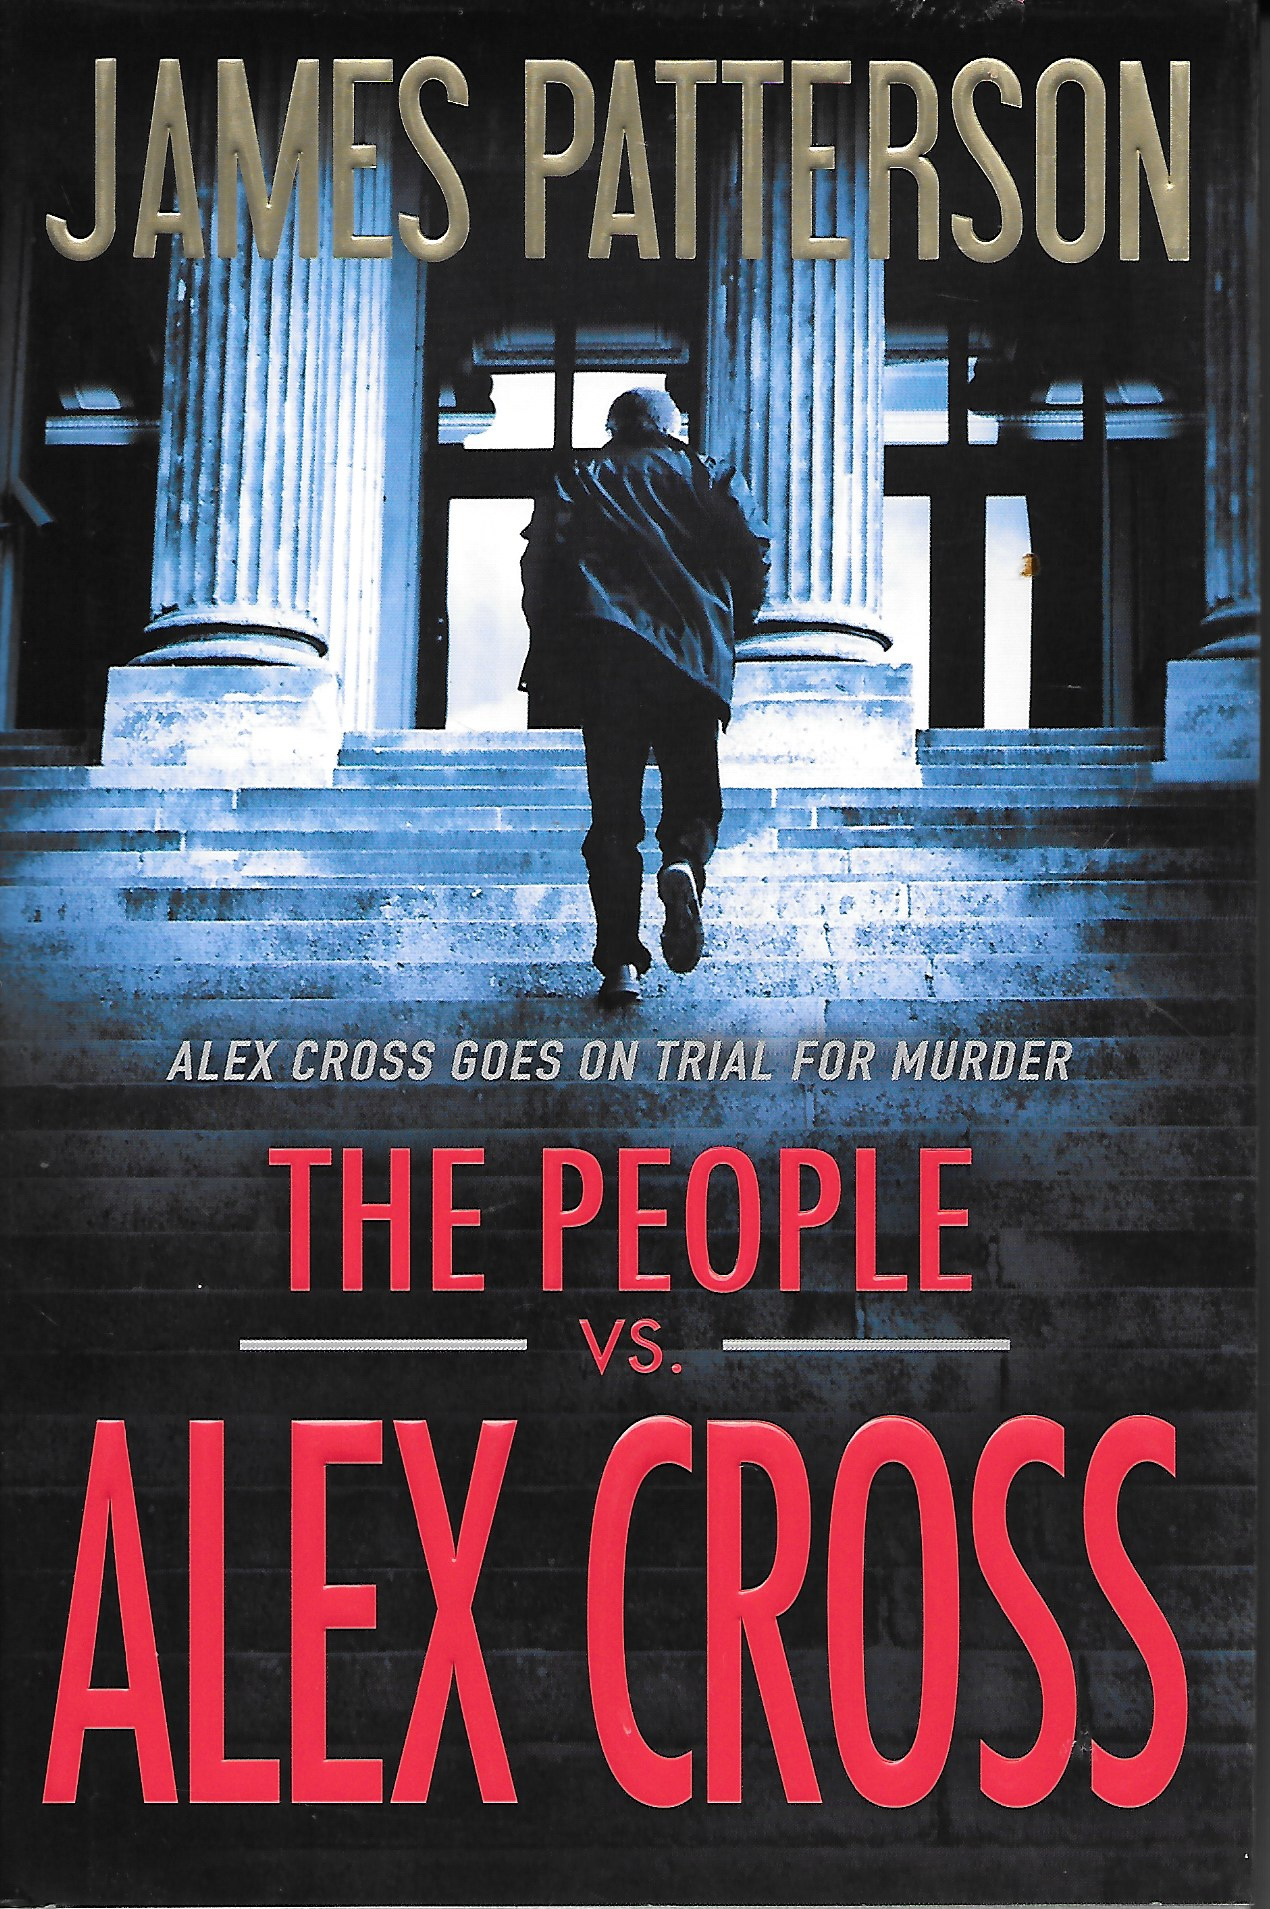 Image for The People Vs. Alex Cross Alex Cross Goes on Trial for Murder